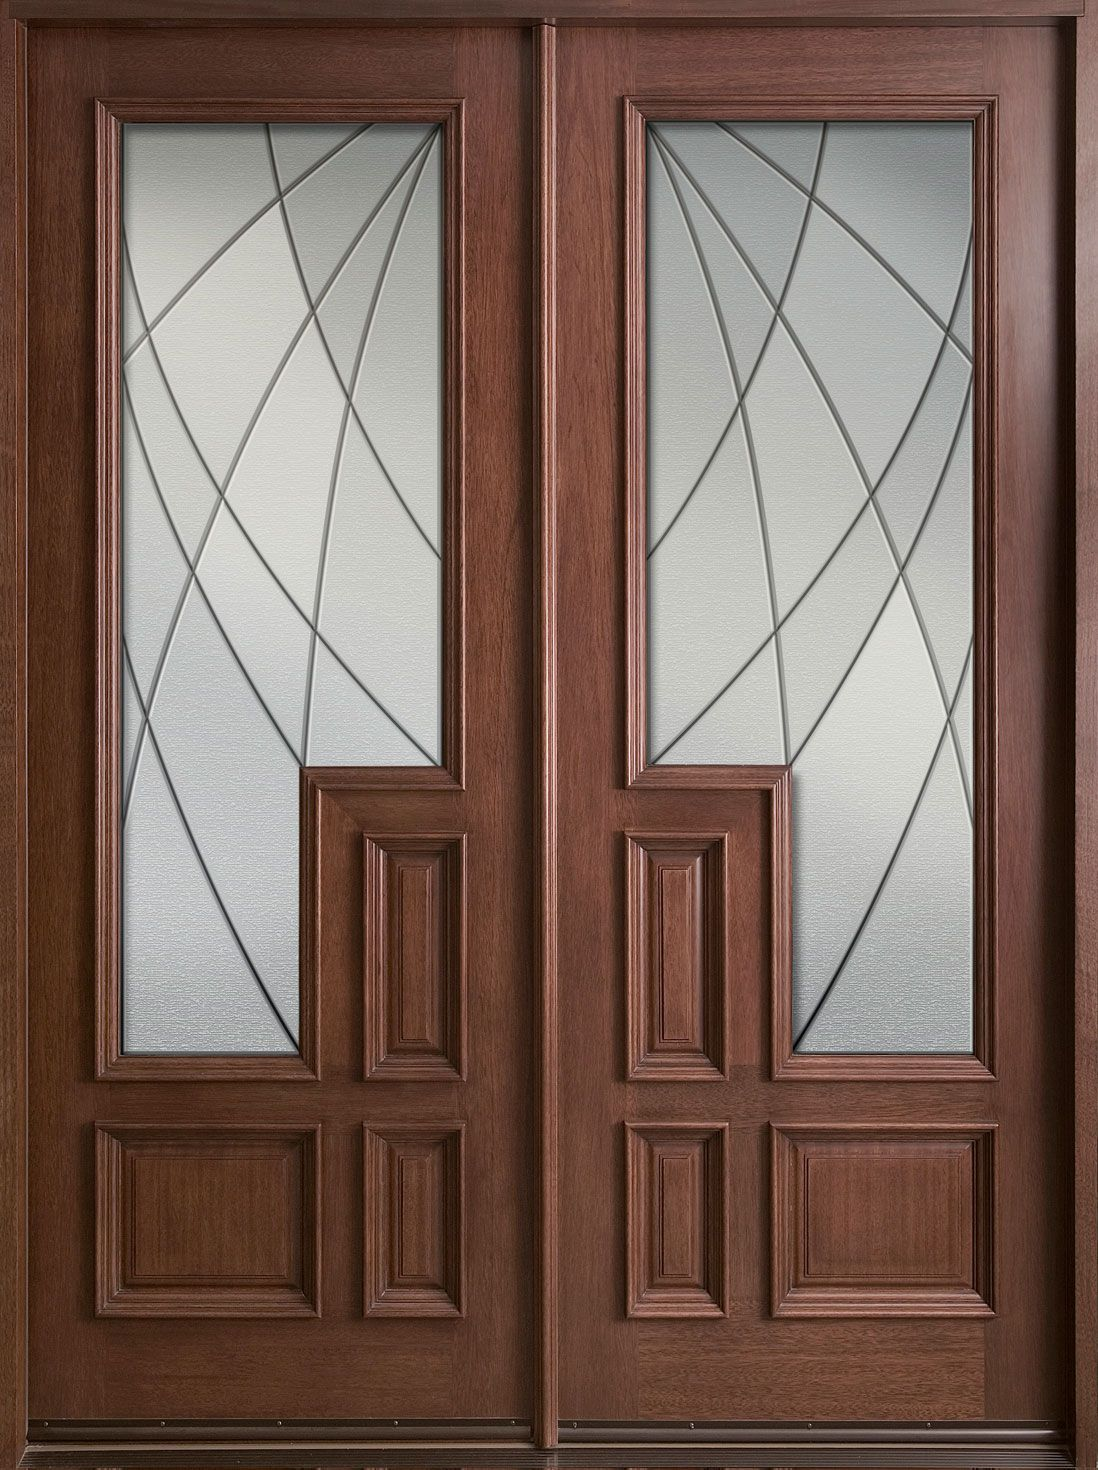 Inspiring double fiberglass entry door as furniture for for Double front doors for homes